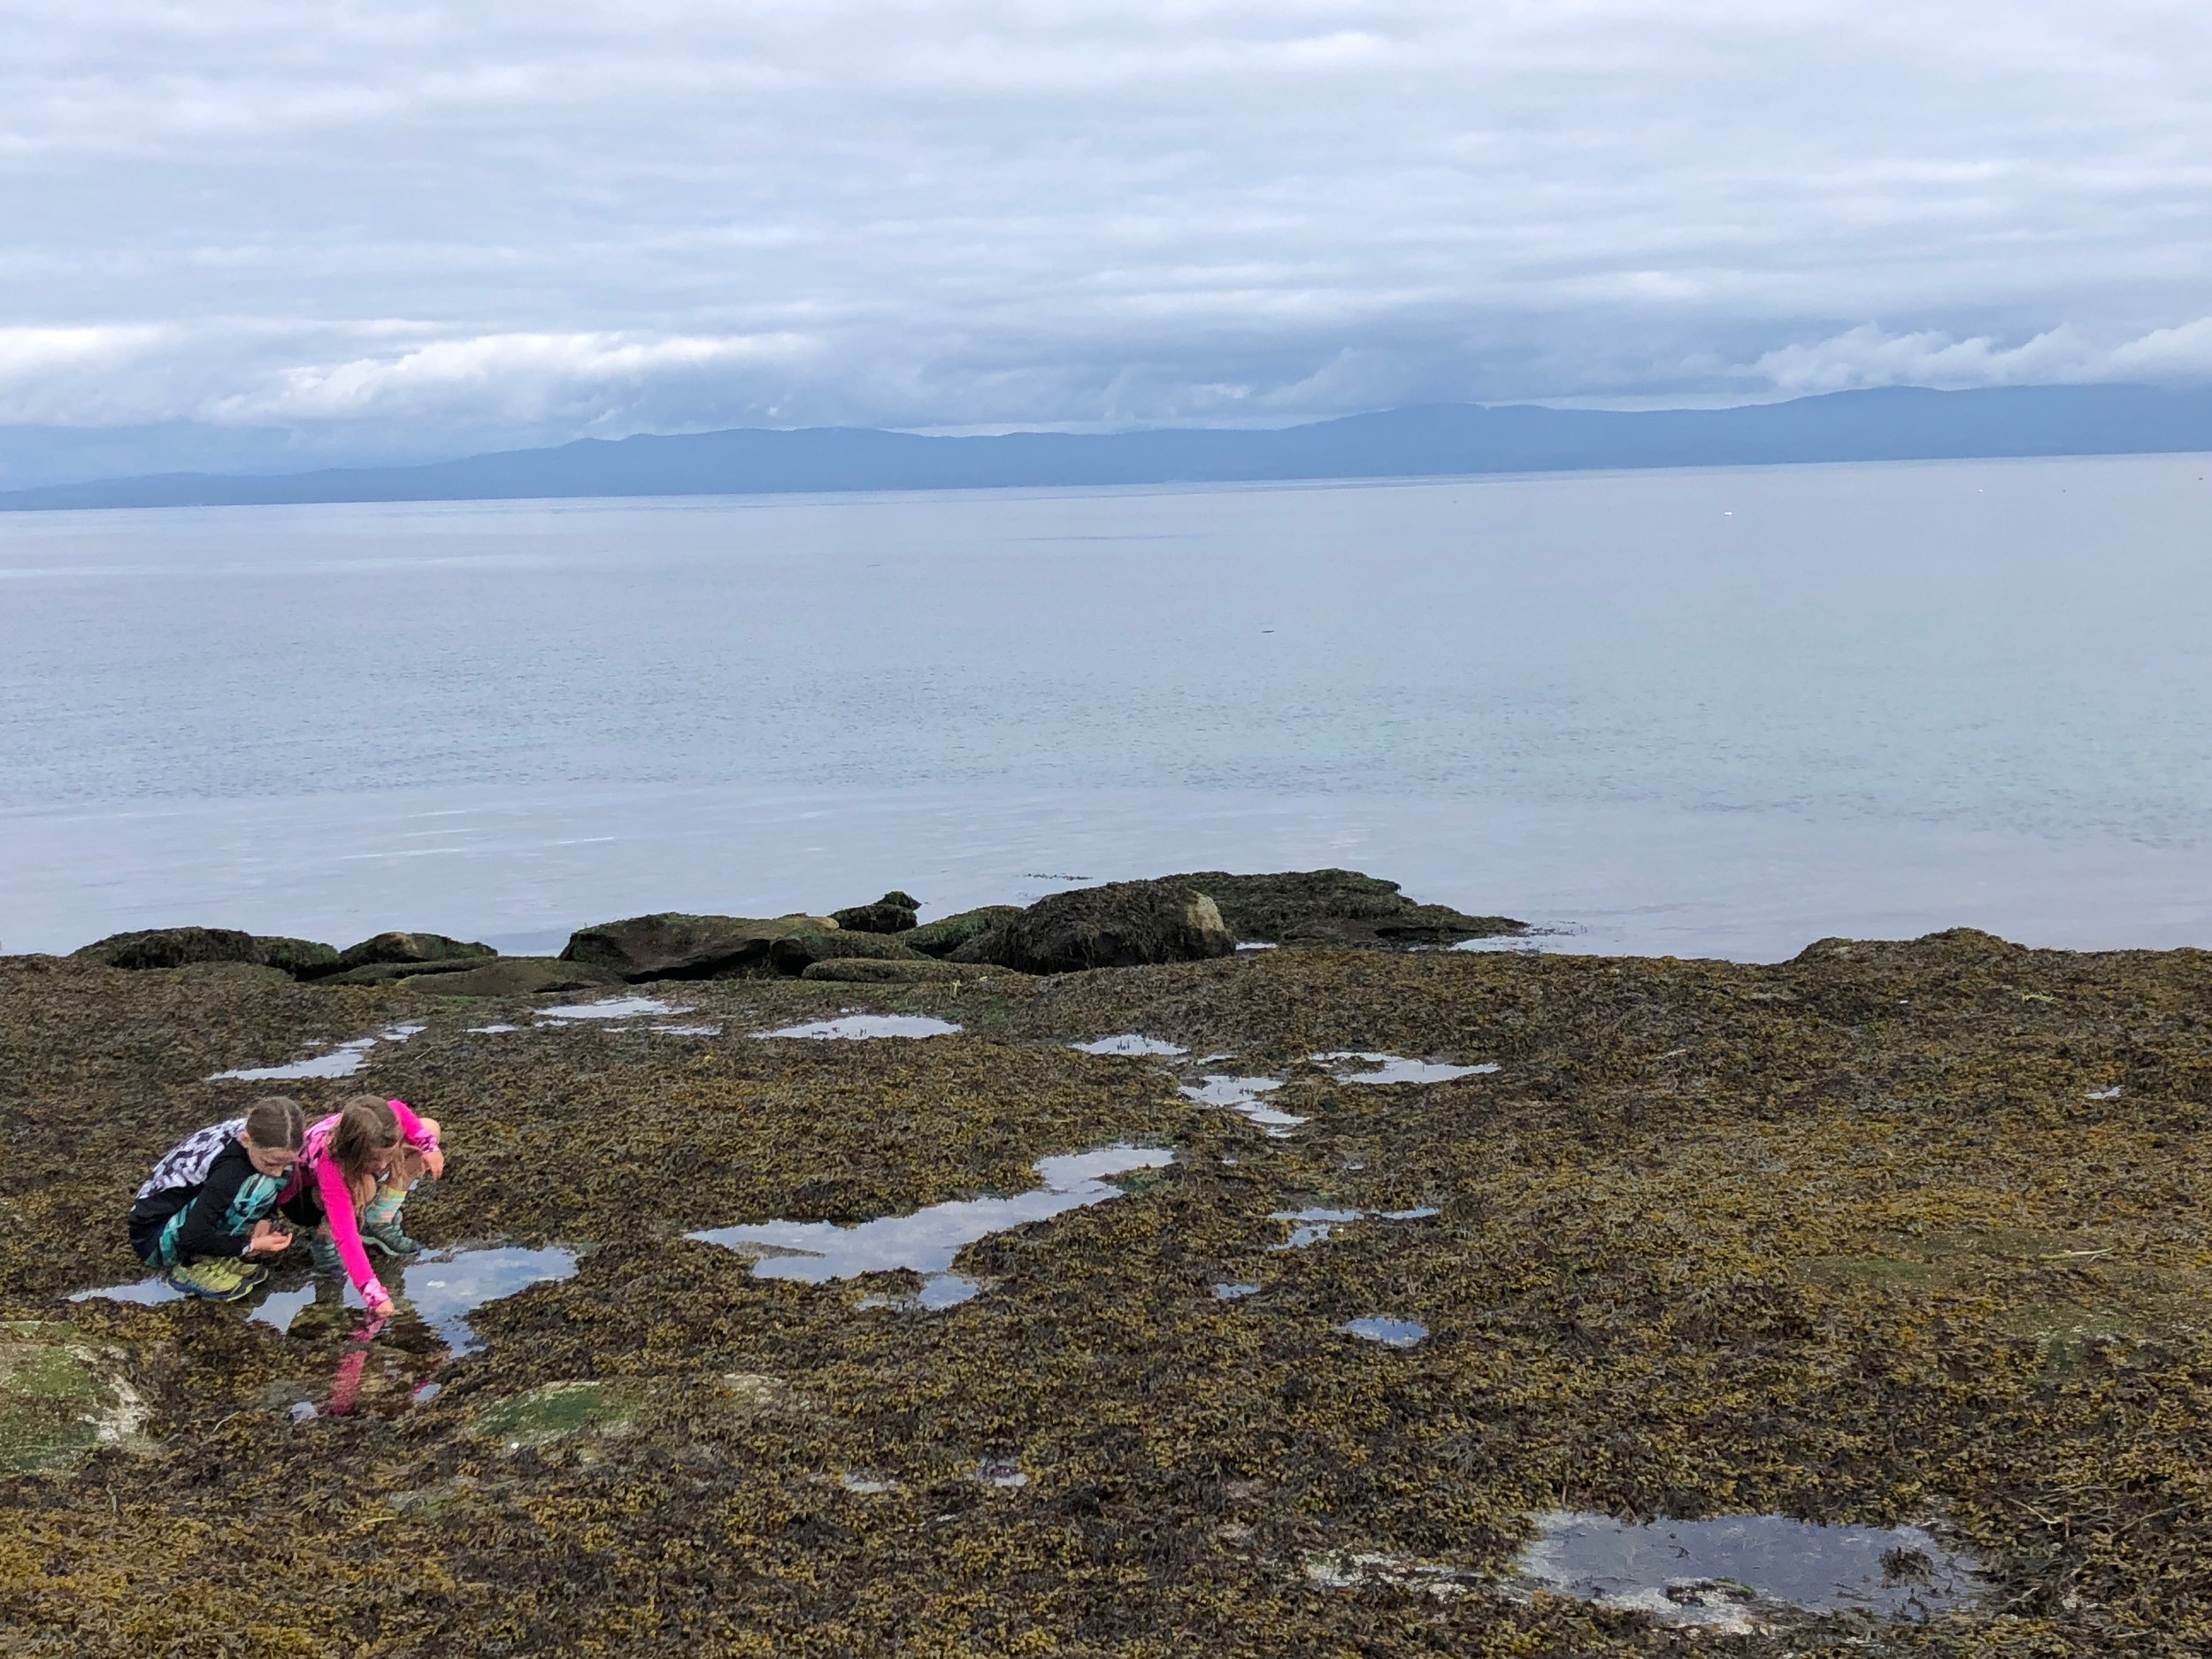 The girls enjoyed exploring the tide pools - we saw sea anemone, crabs, starfish and a beautiful grey heron